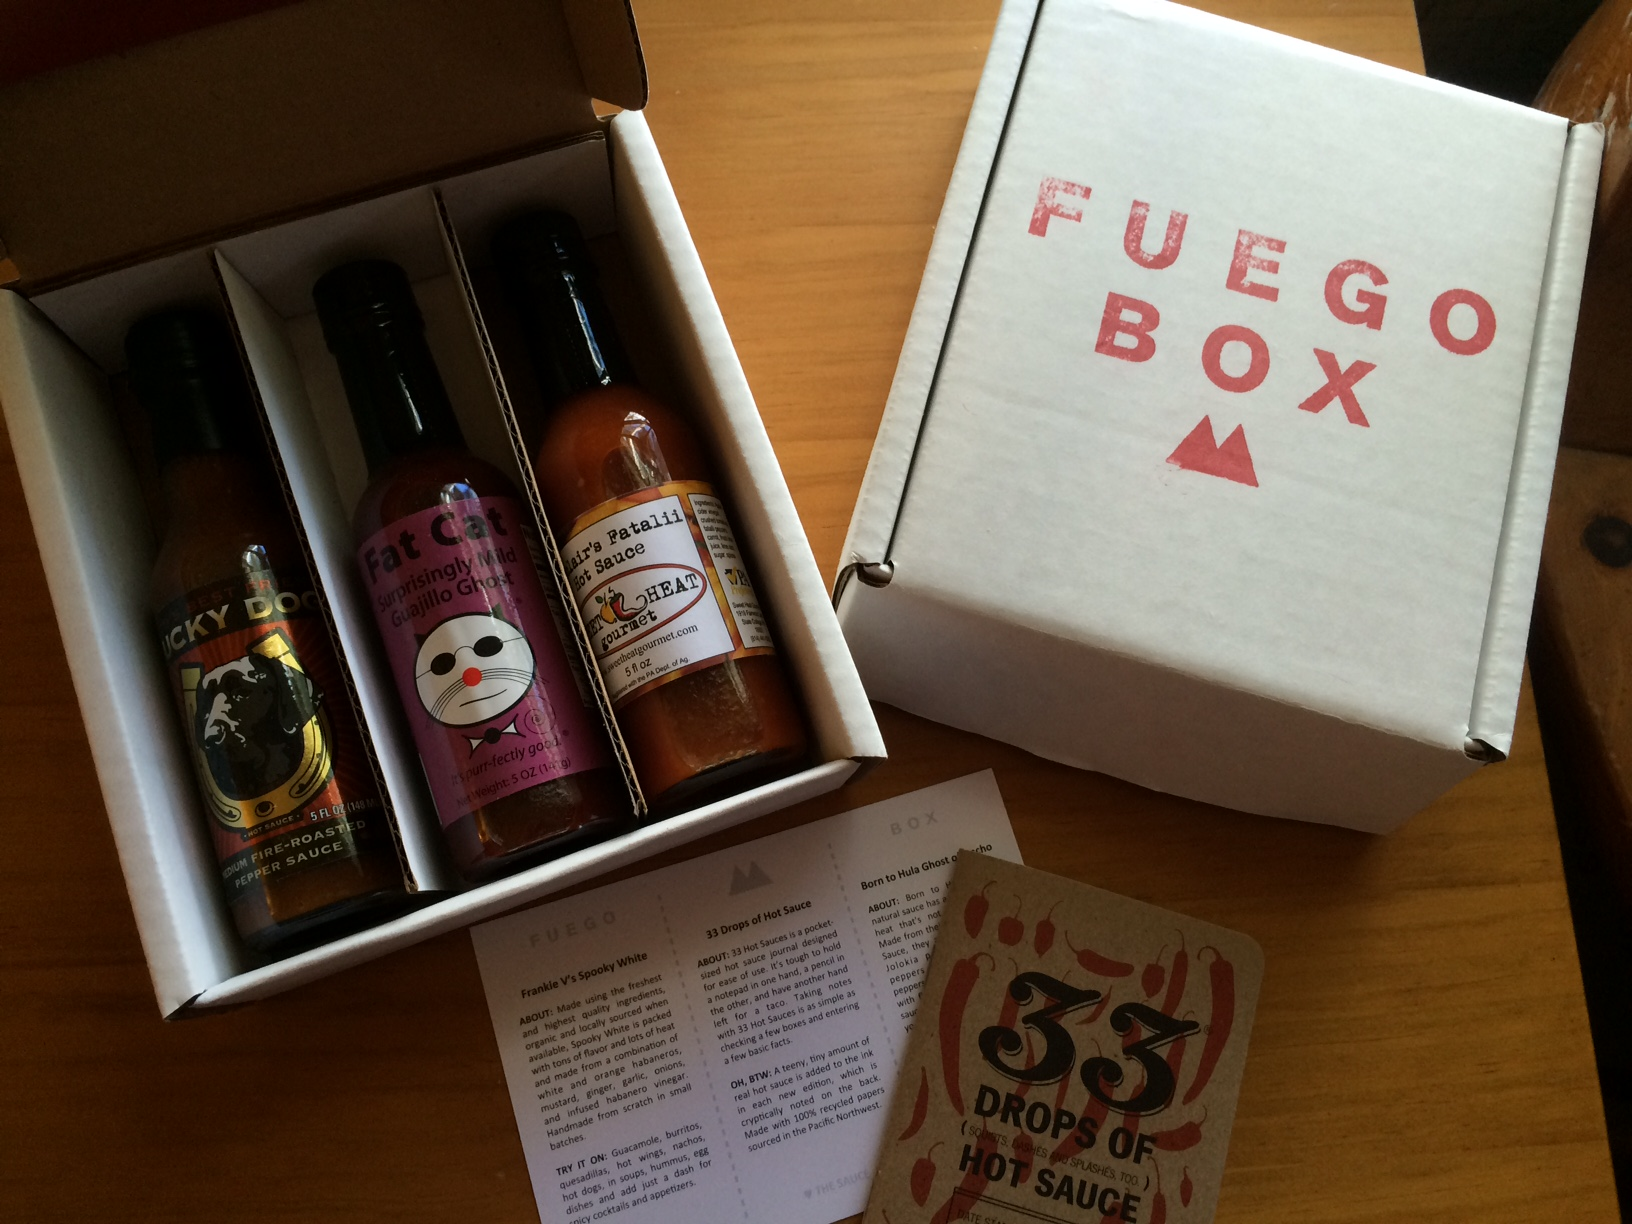 The Fuego box_hotsauce club